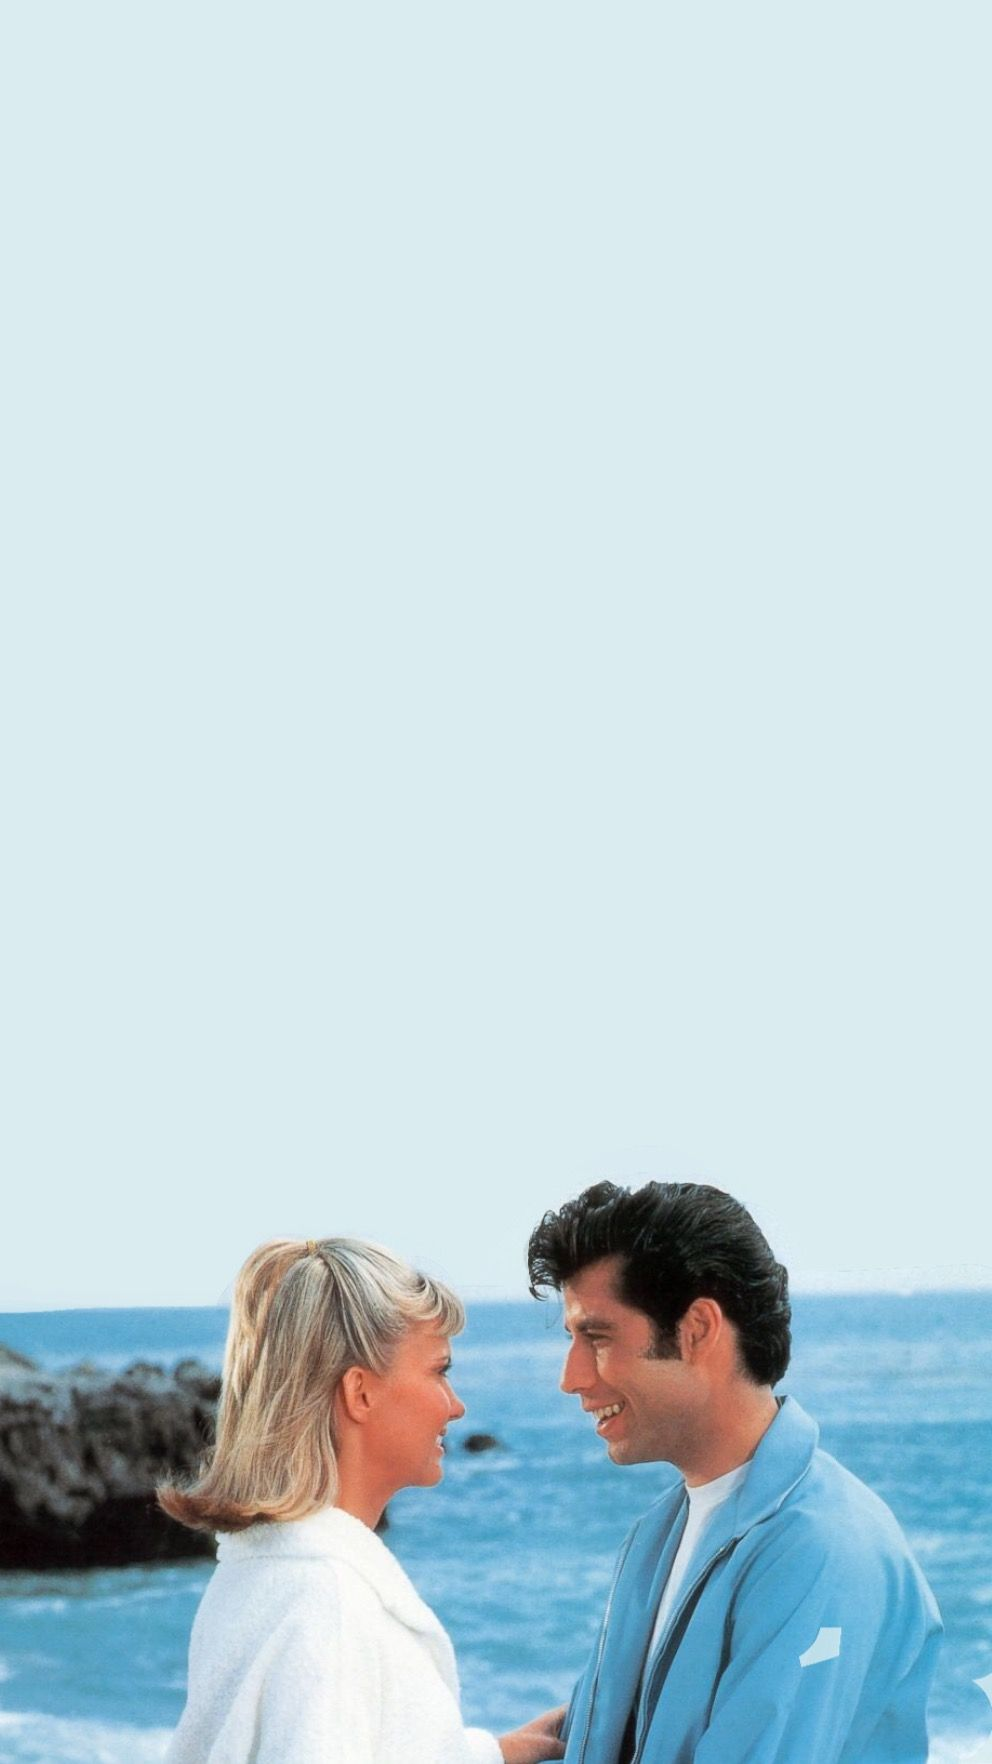 Sandy And Danny Wallpaper Grease Aesthetic Movies Grease Movie Sandy And Danny